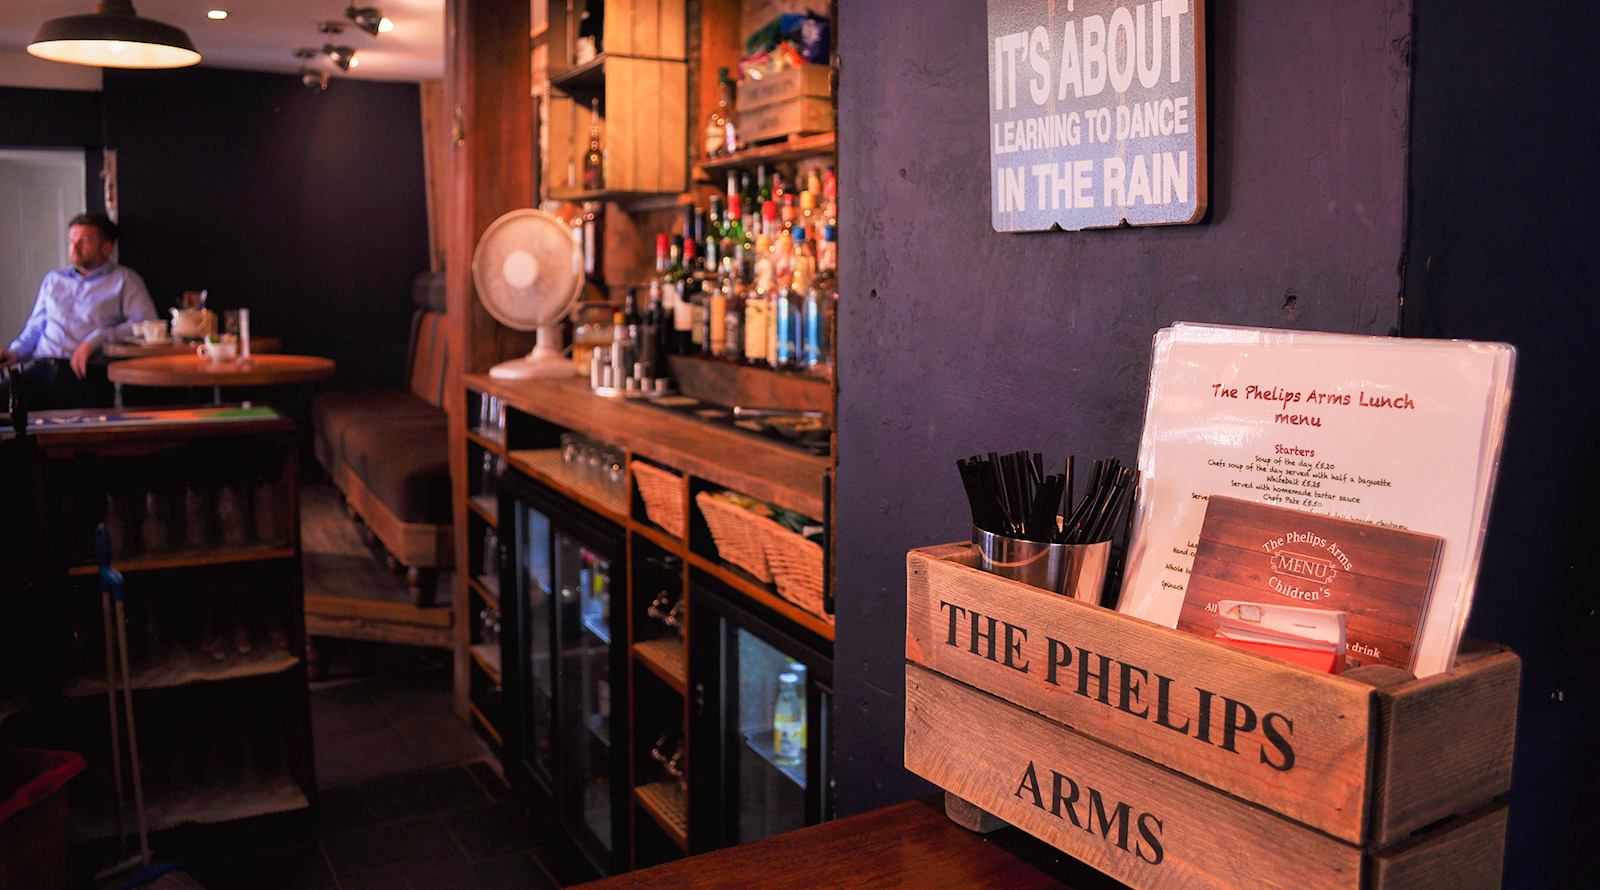 phelips arms bar photo